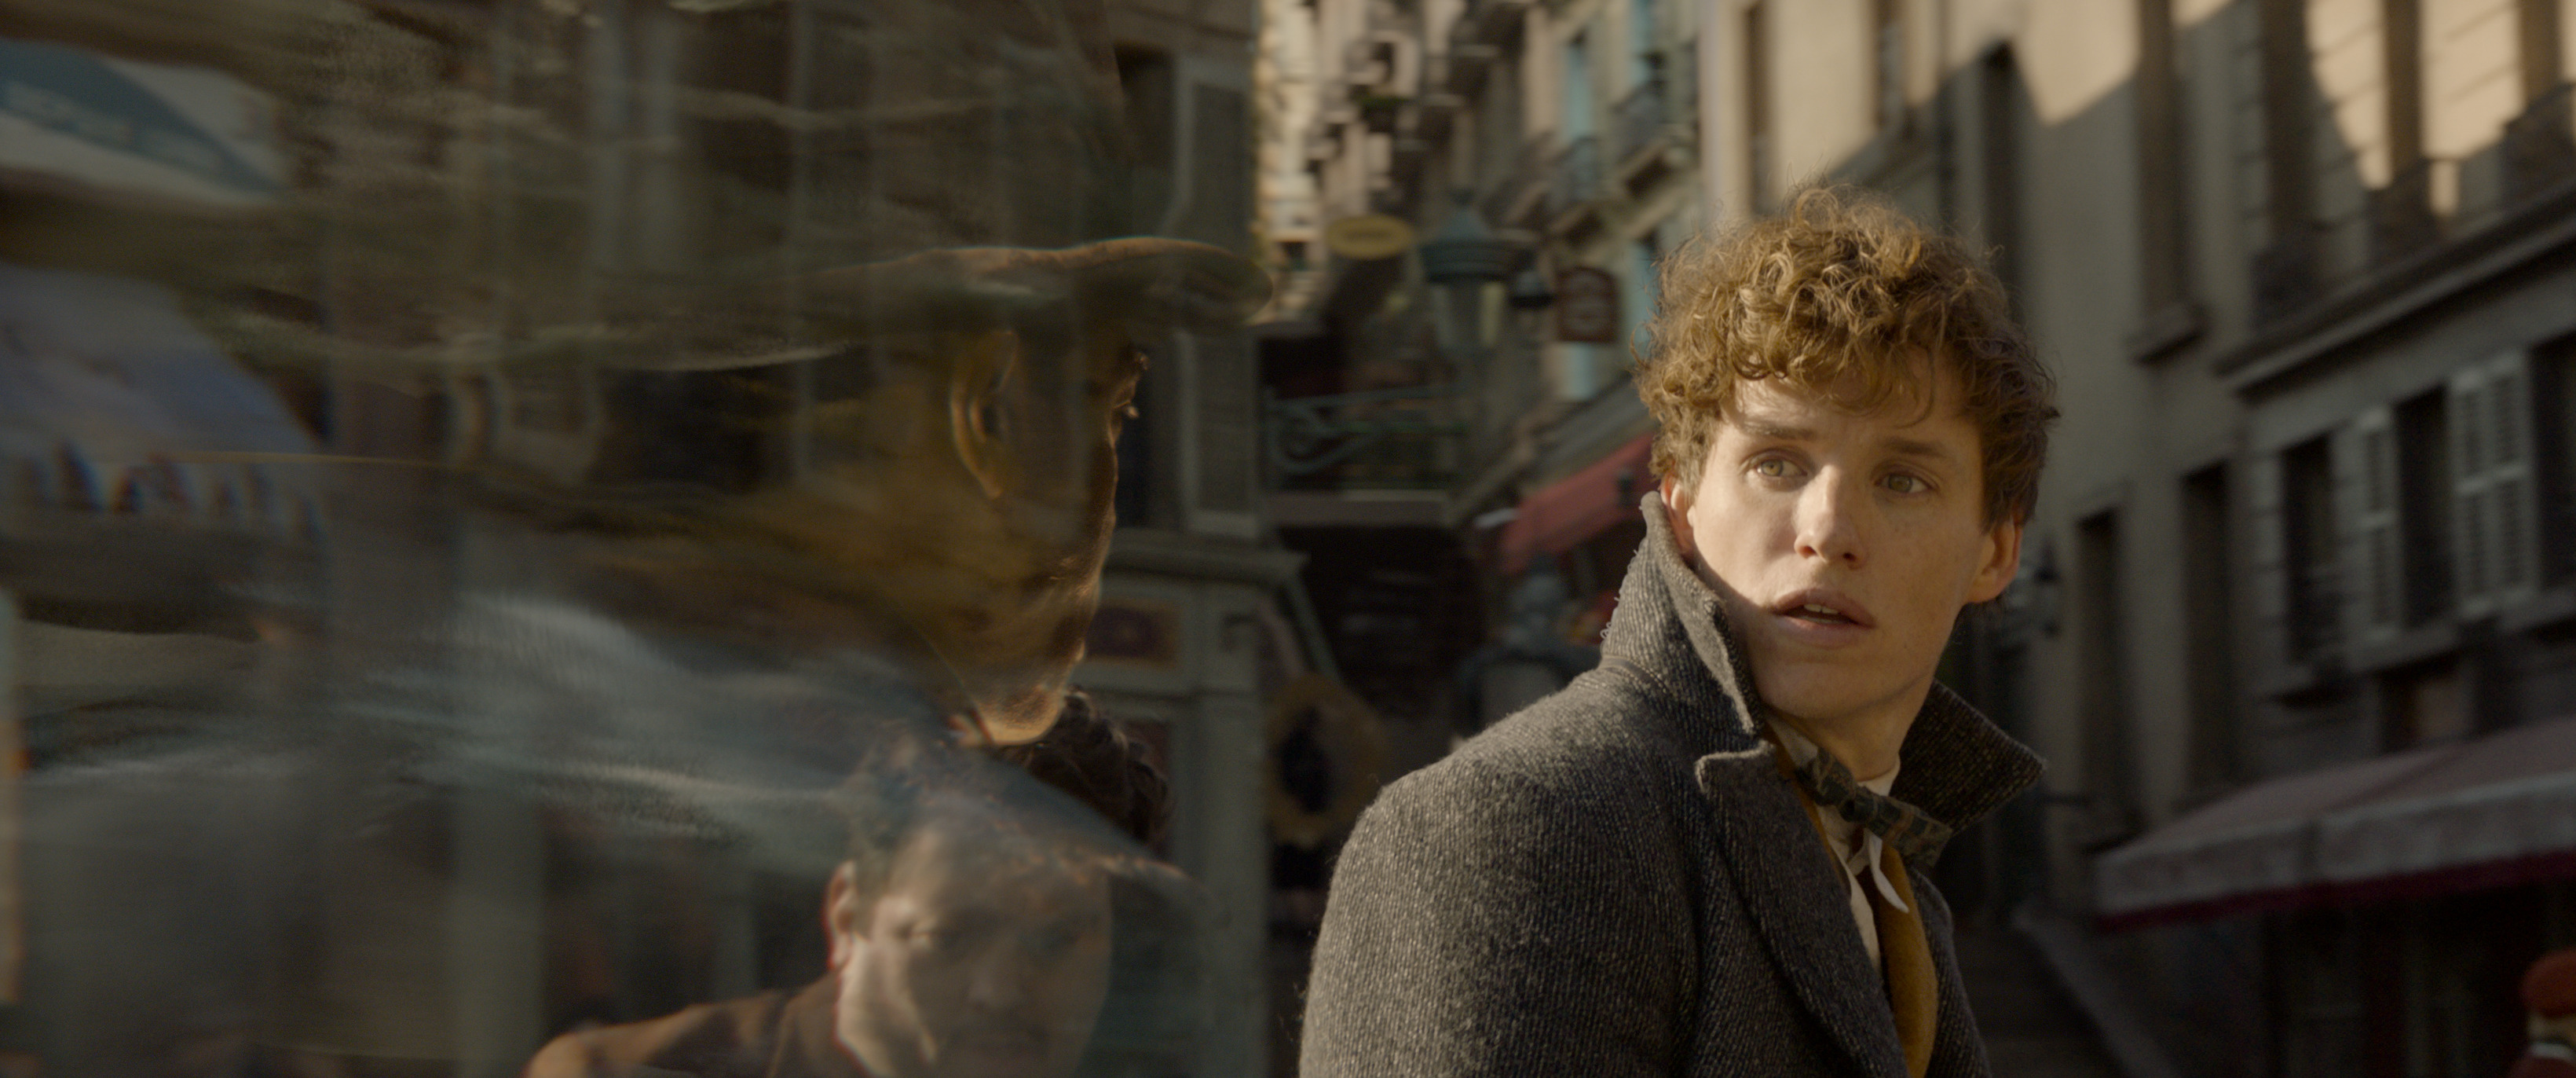 """Fantastic Beasts: The Crimes of Grindelwald"": Yusuf Kama (William Nadylam), Jacob Kowalski (Dan Fogler), and Newt Scamander (Eddie Redmayne)"